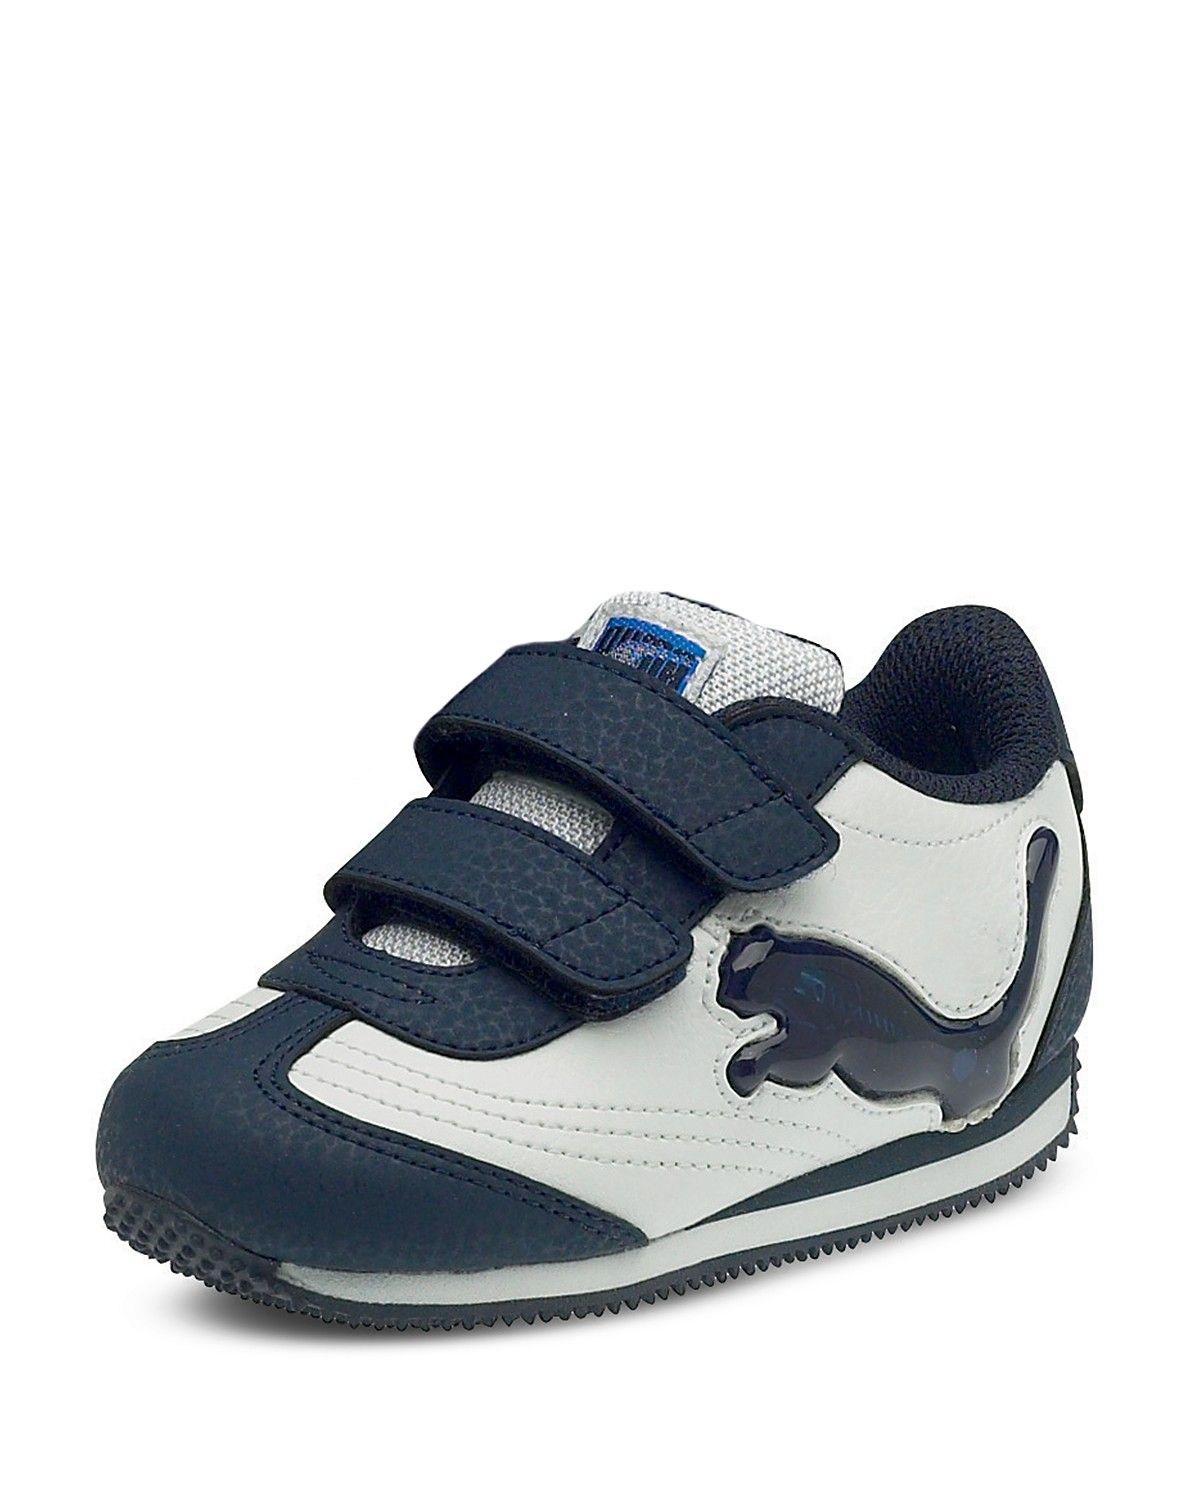 Puma Shoes Toddler Boys  Speeder Illuminescent Sneakers - Sizes 4-7 Infant   8-10 Toddler  4bcea048c22c